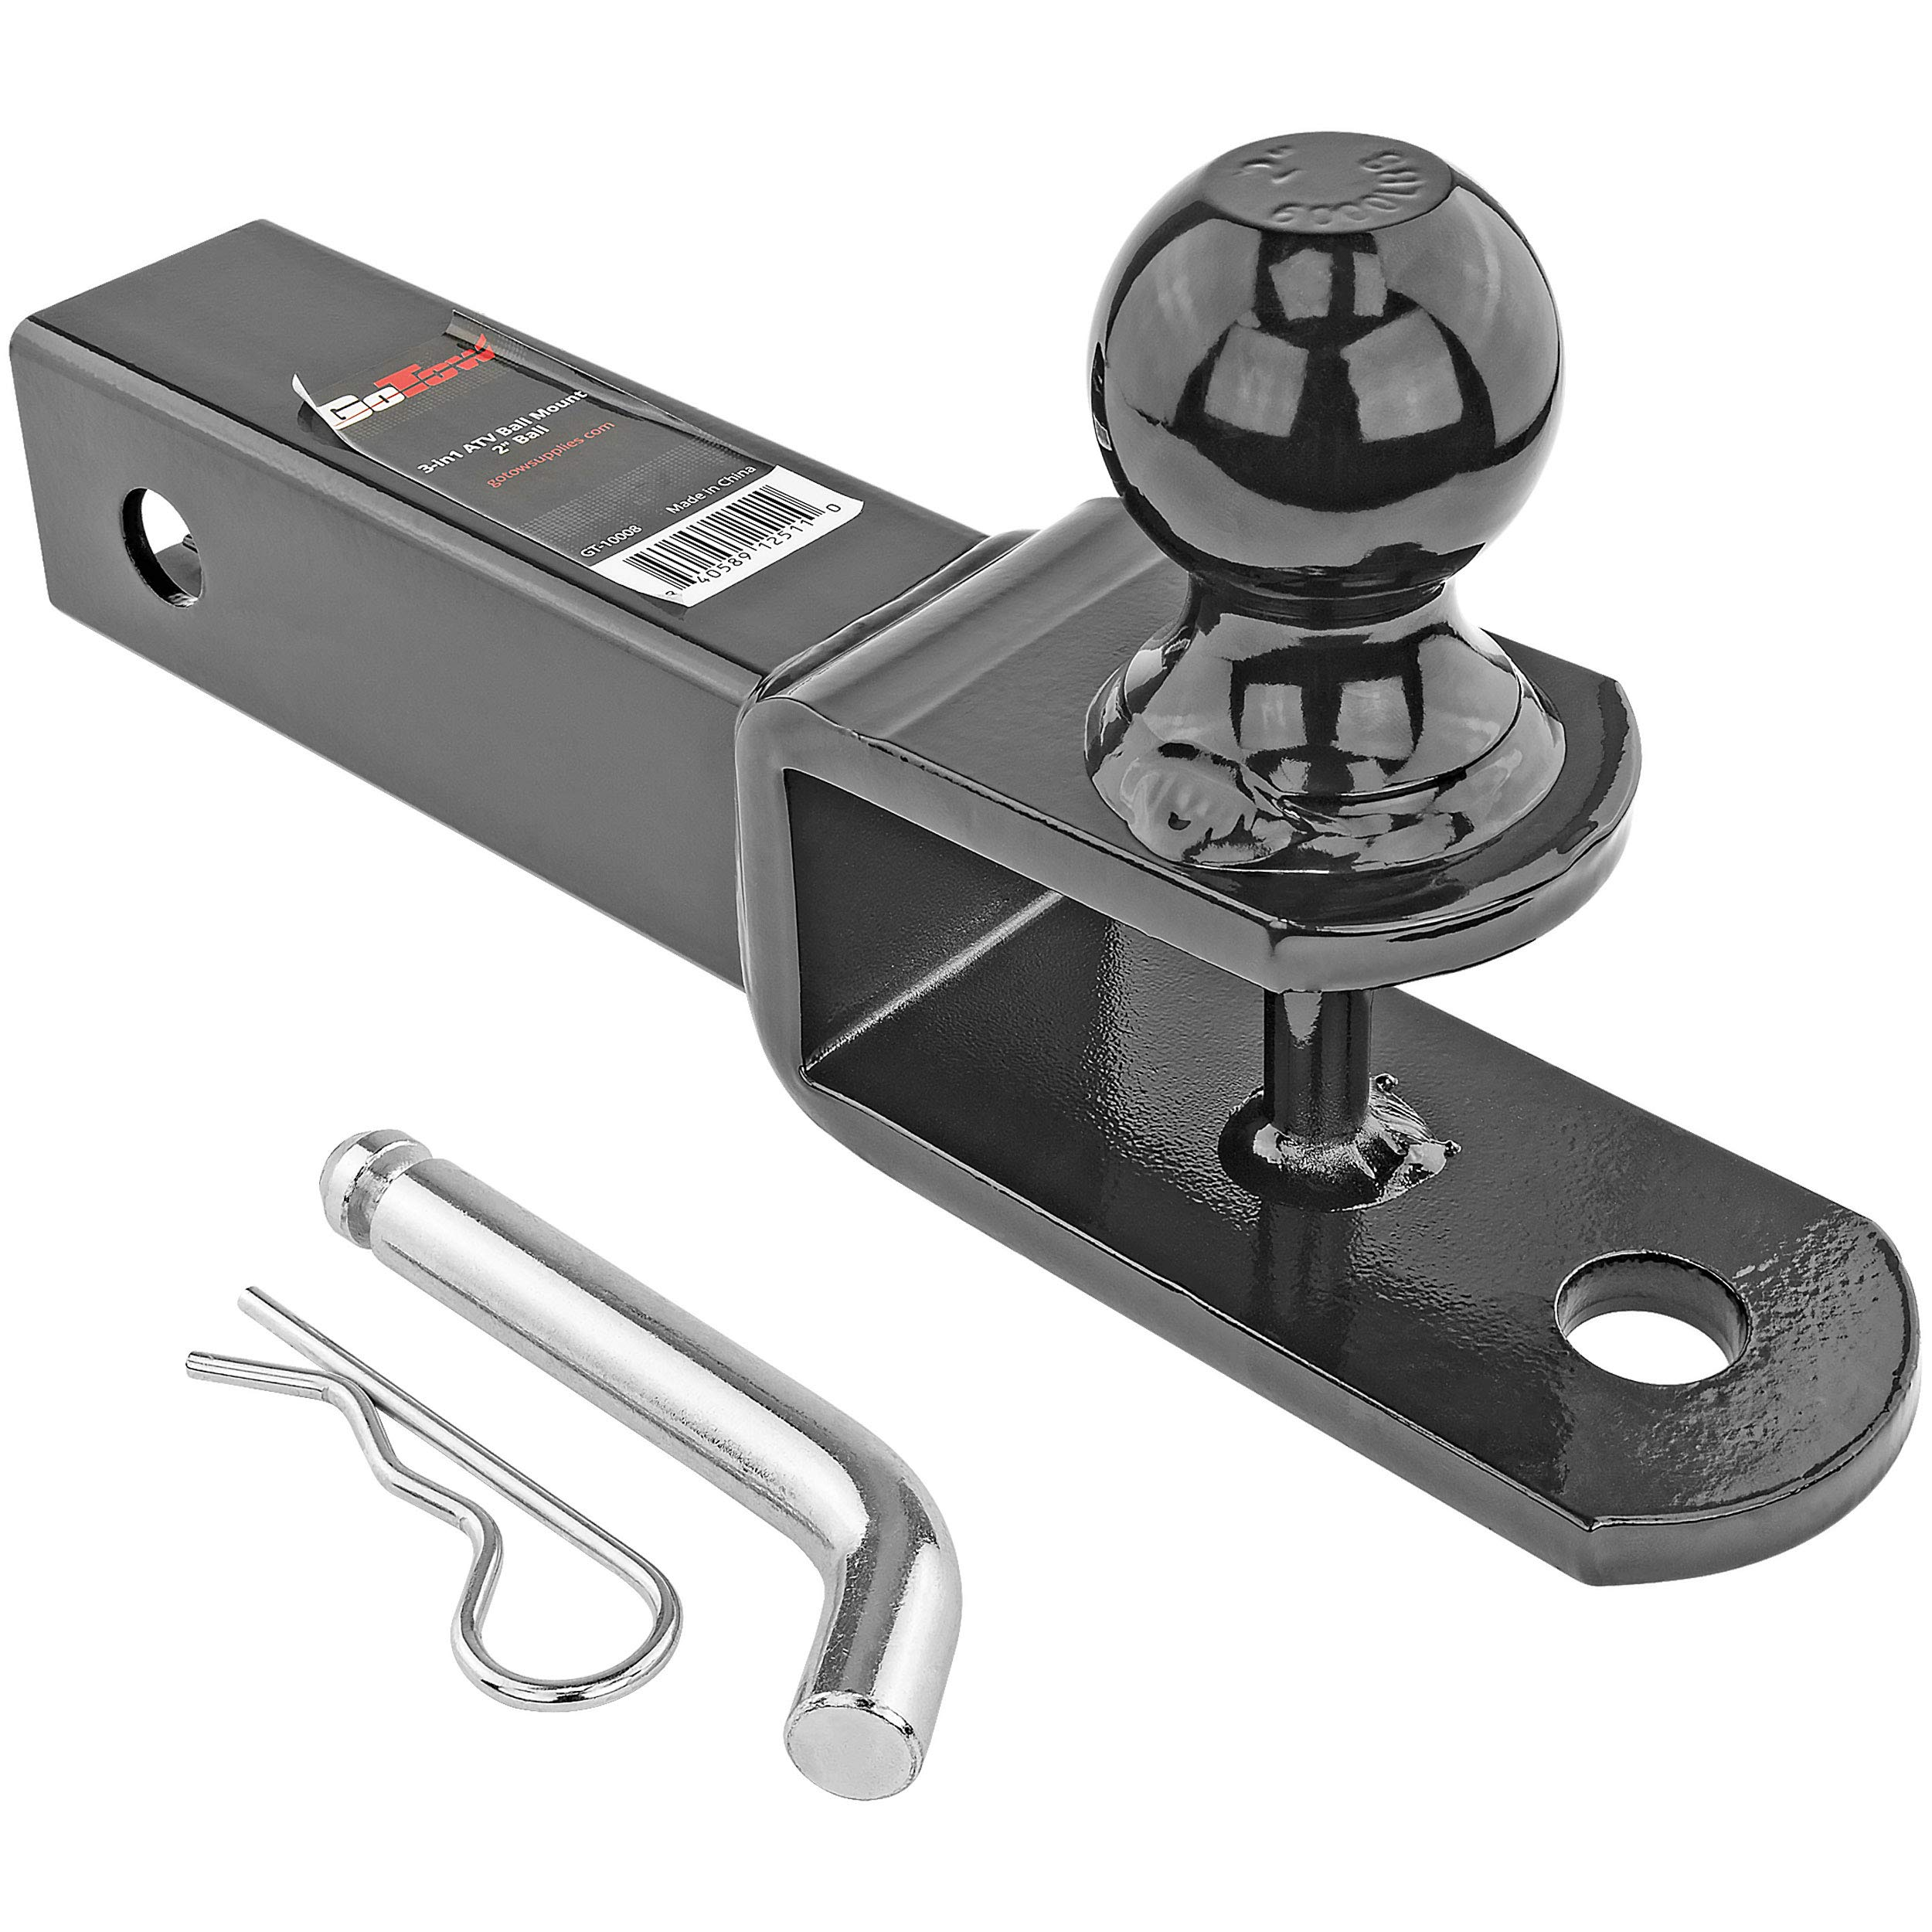 GoTow GT-10008 ATV UTV 3 In 1 Ball Mount Hitch W/ Hitch Pin Fits 2-inch Receiver Class III 6000lb 2-inch Ball by GoTow